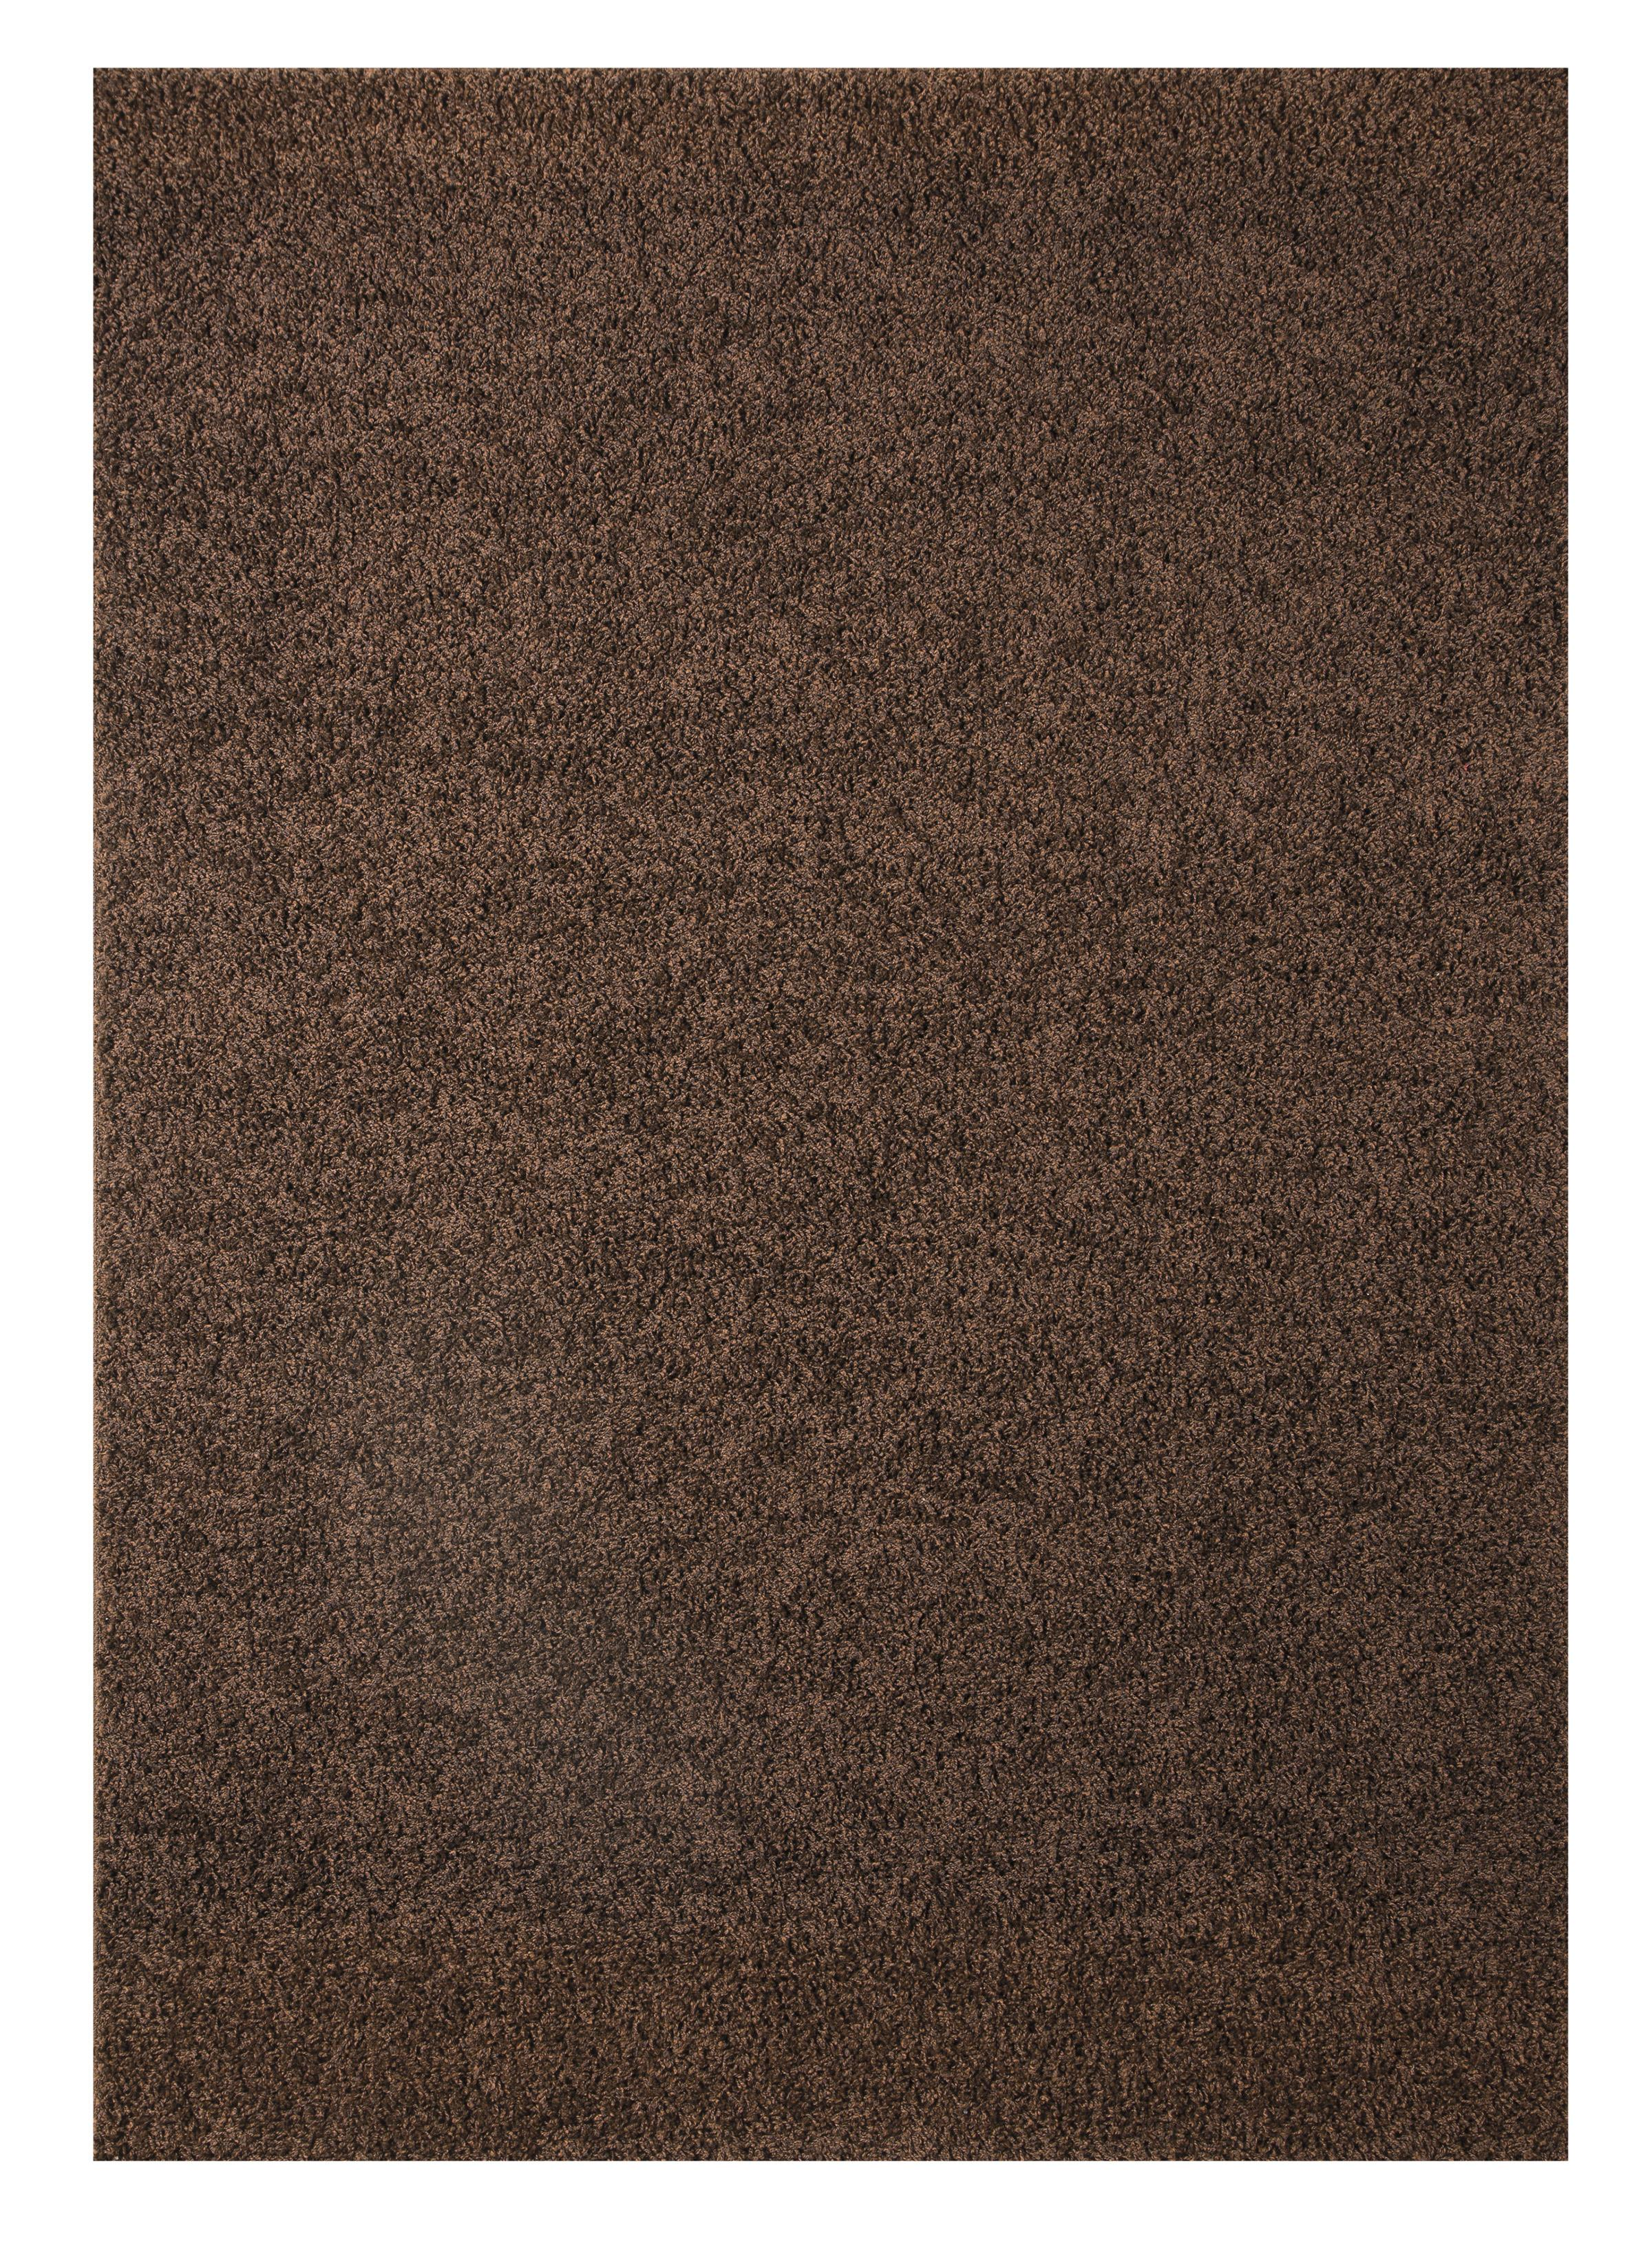 Signature Design by Ashley Contemporary Area Rugs Caci chocolate Medium Rug - Item Number: R243002